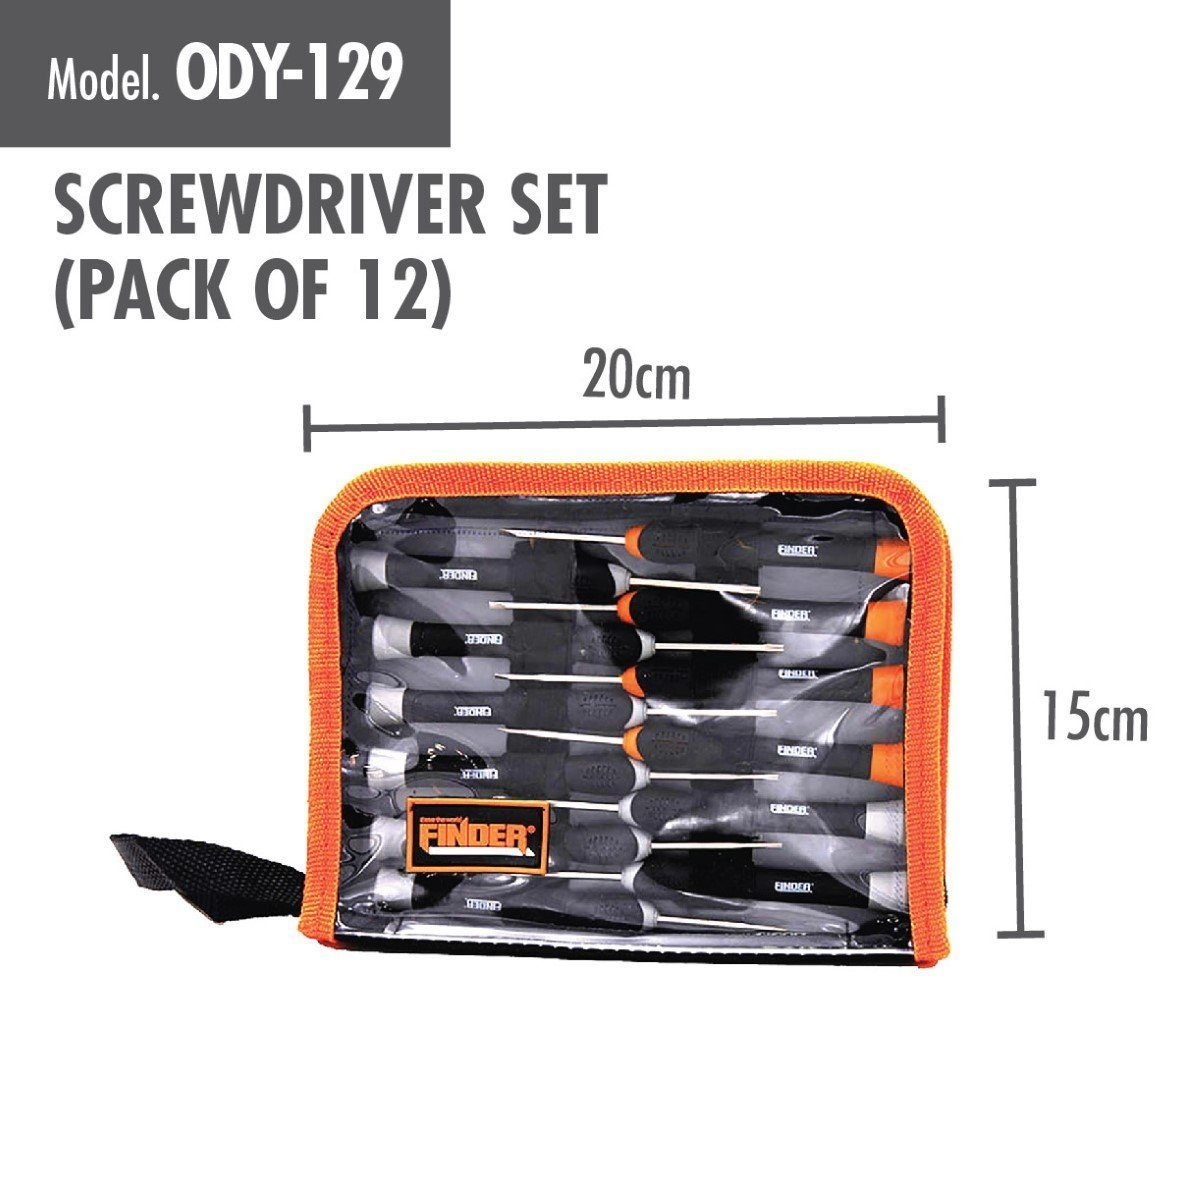 Screwdriver Set (Pack of 12) - HOUZE - The Homeware Superstore